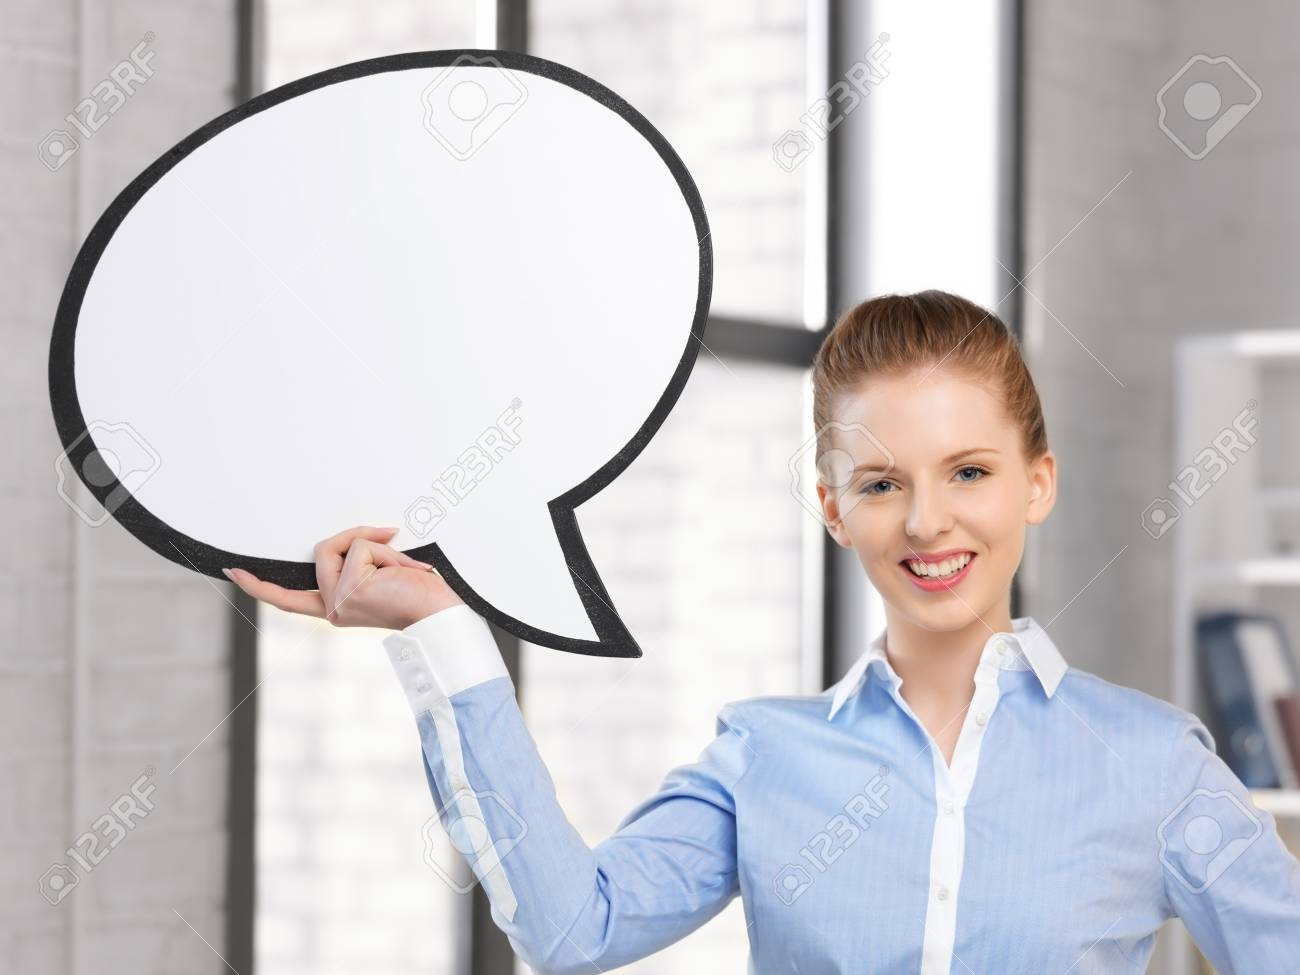 bright picture of smiling businesswoman with blank text bubble Stock Photo - 15482410